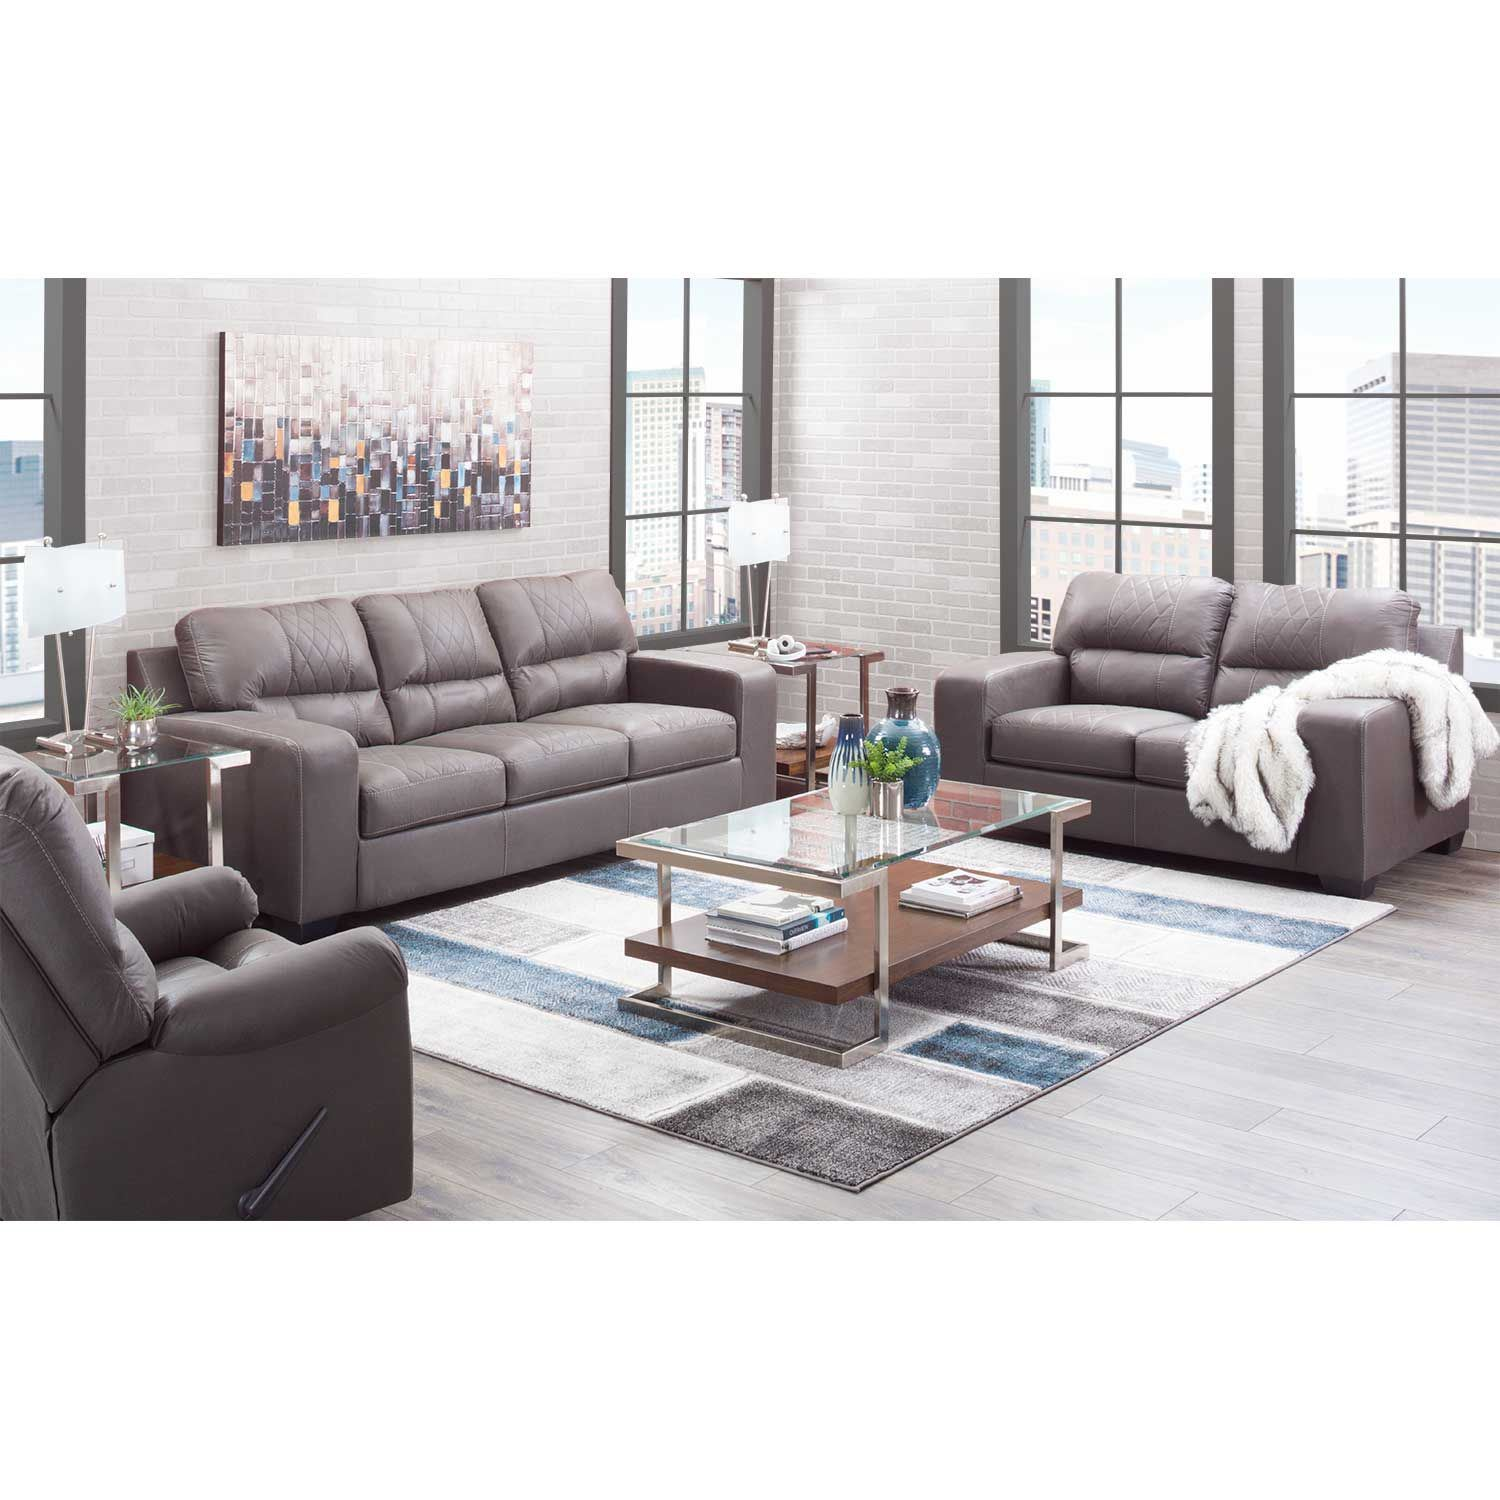 Picture of Narzole Gray Loveseat